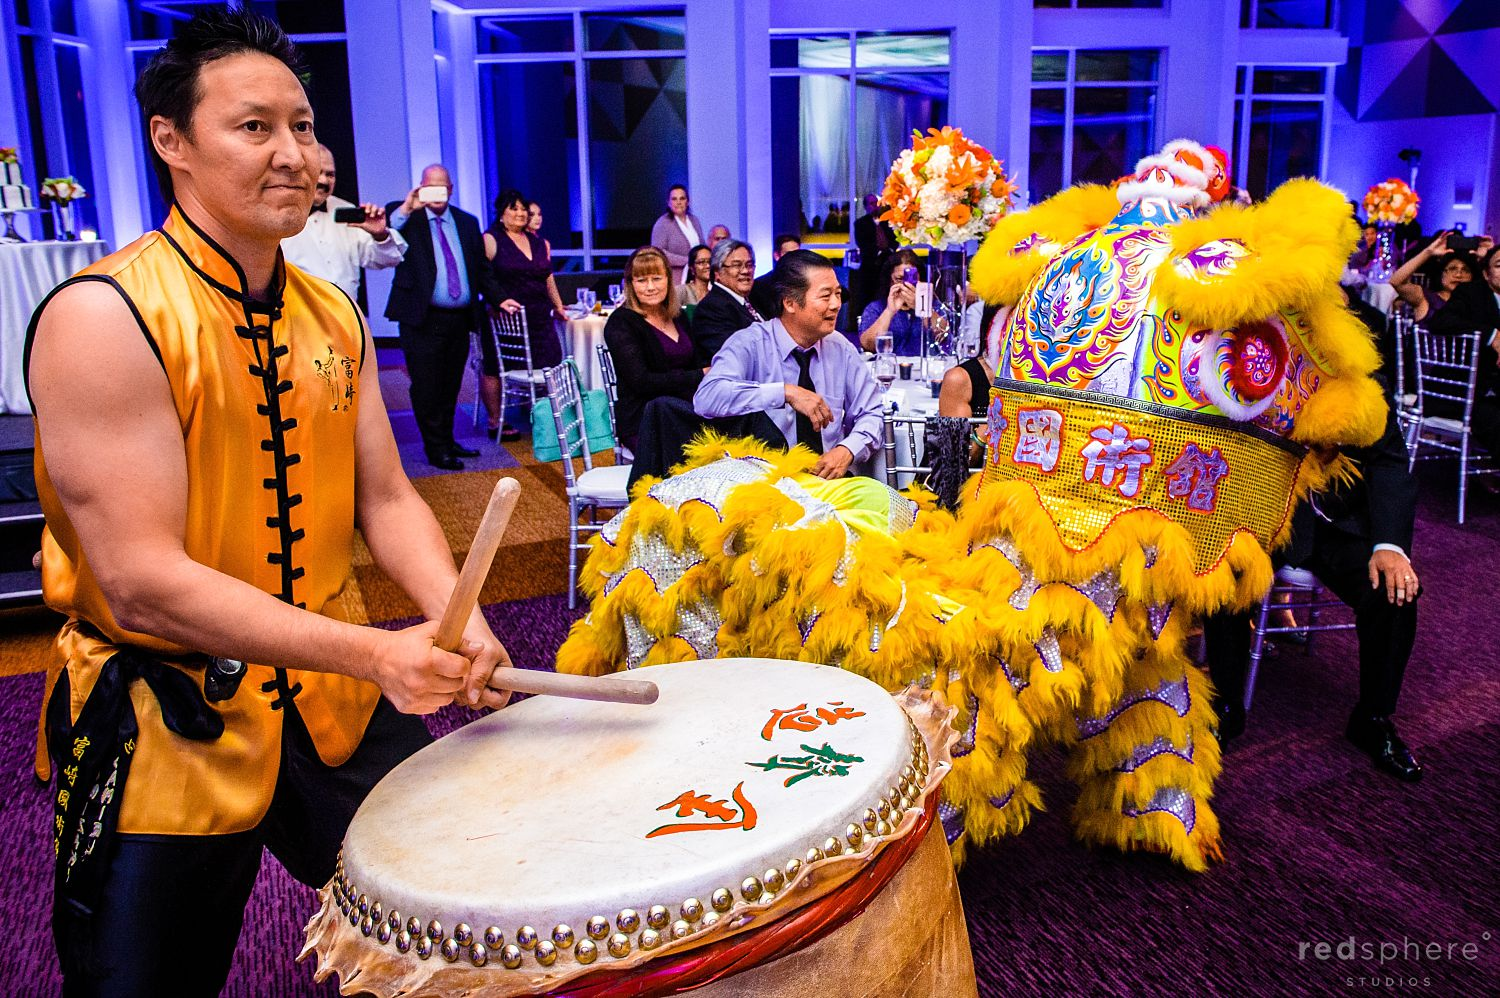 Lion Dance Drummers Perform for the Guests at Wedding Reception